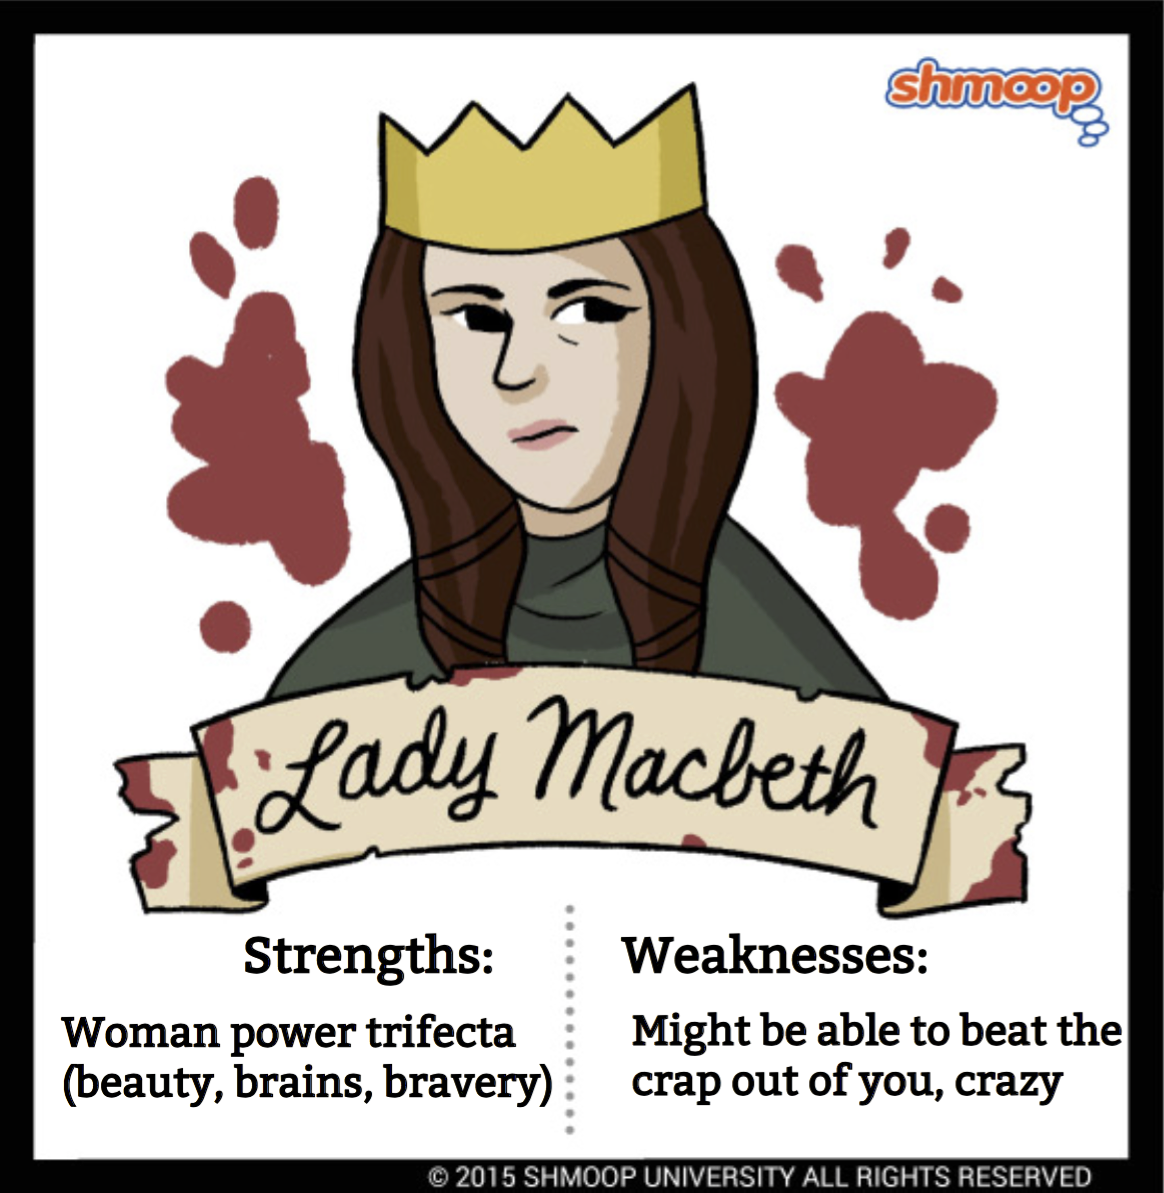 Masculinity and femininity in macbeth essay witches